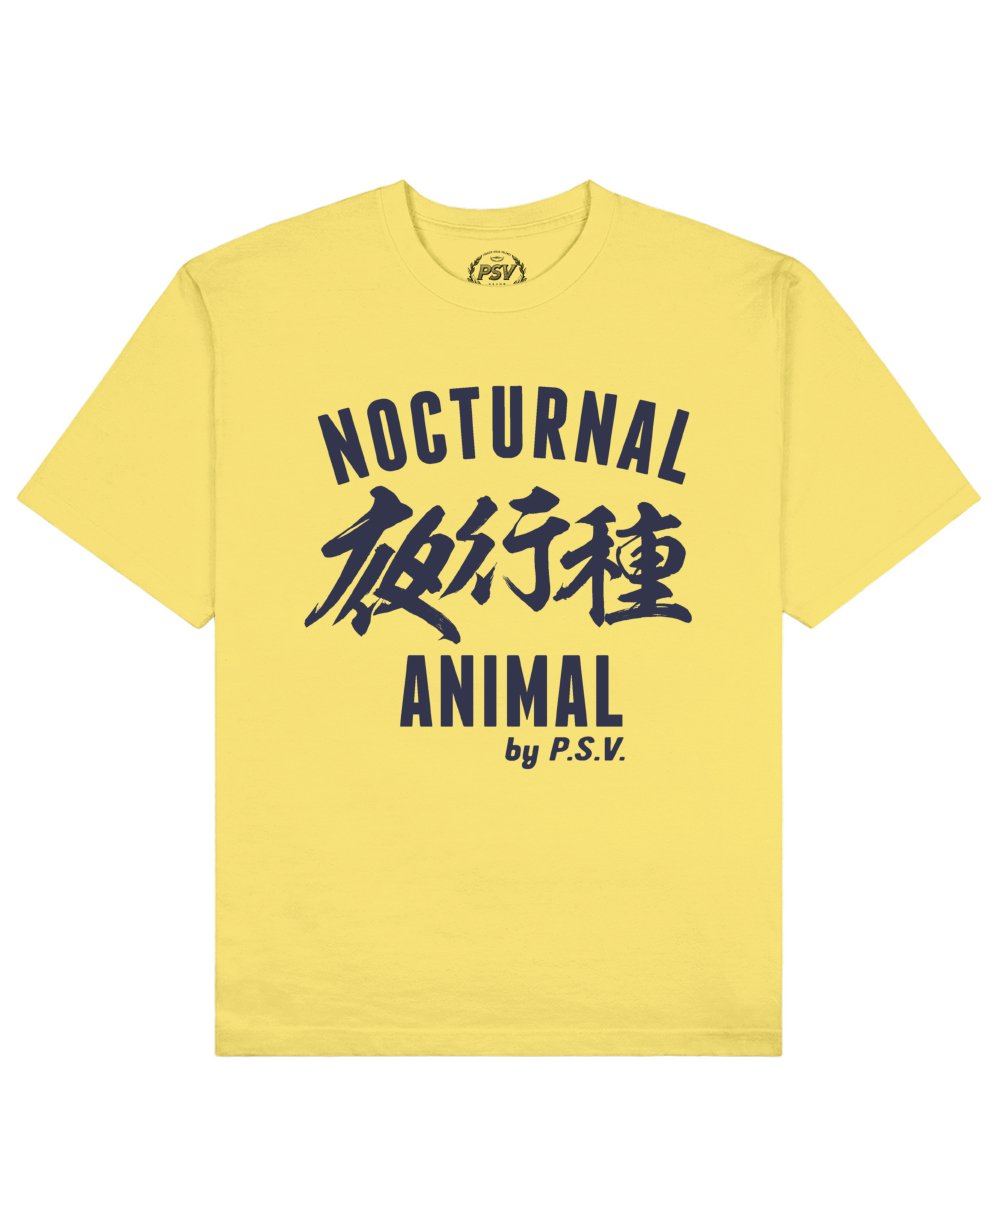 Nocturnal Animal Print T-Shirt in Light Yellow - T-Shirts - PSV - BRANMA